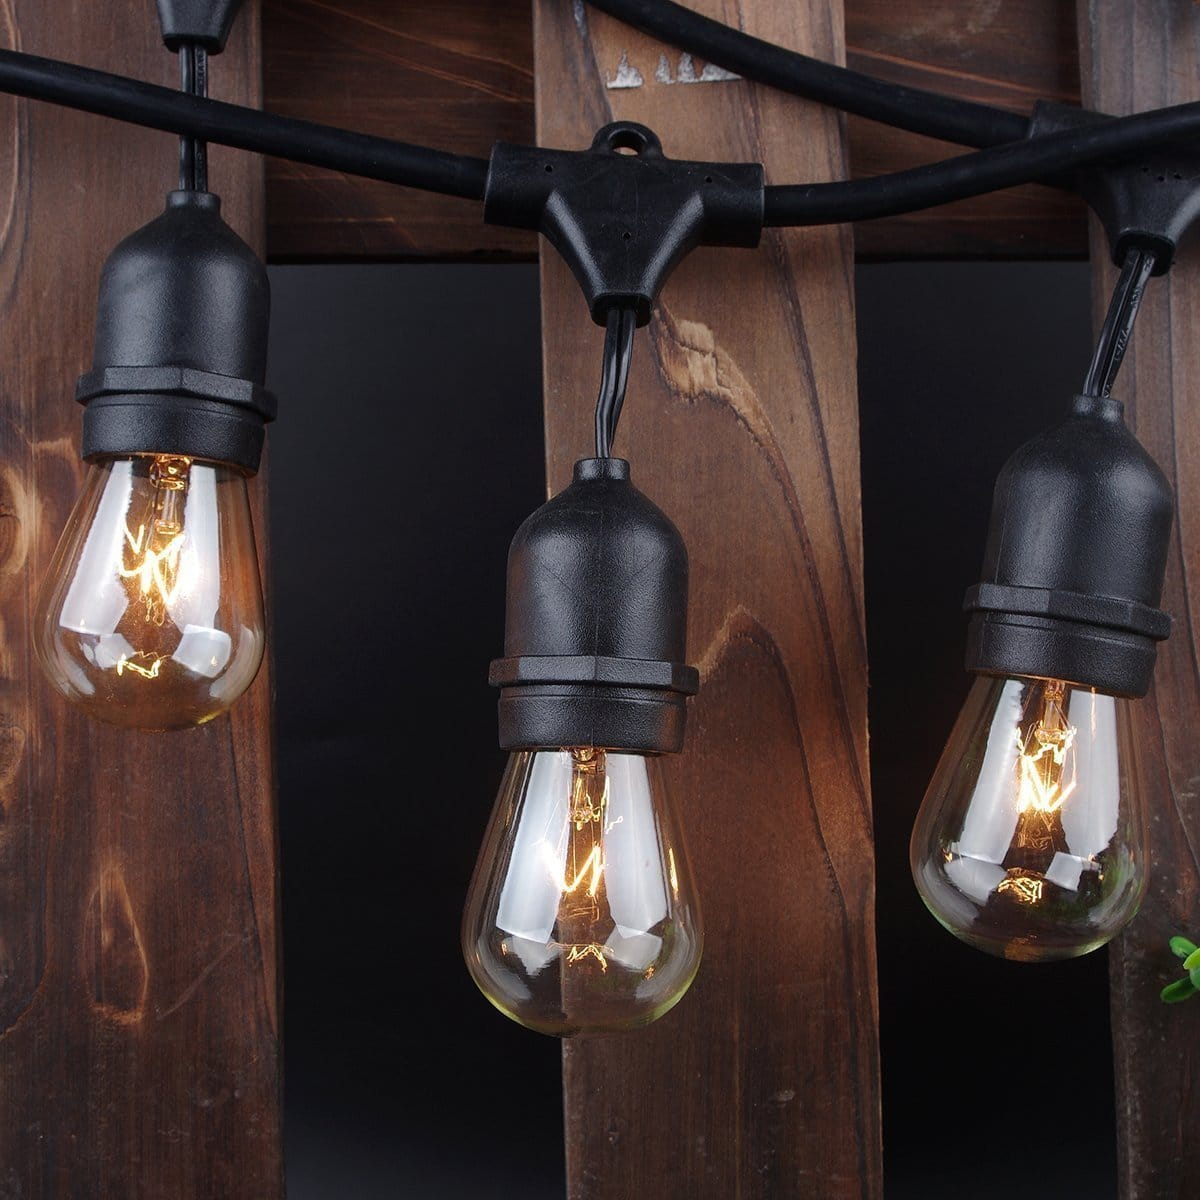 48ft (15 bulb) Weatherproof Vintage Outdoor String Lights bulbs for $27.99 AC + free shipping at Amazon